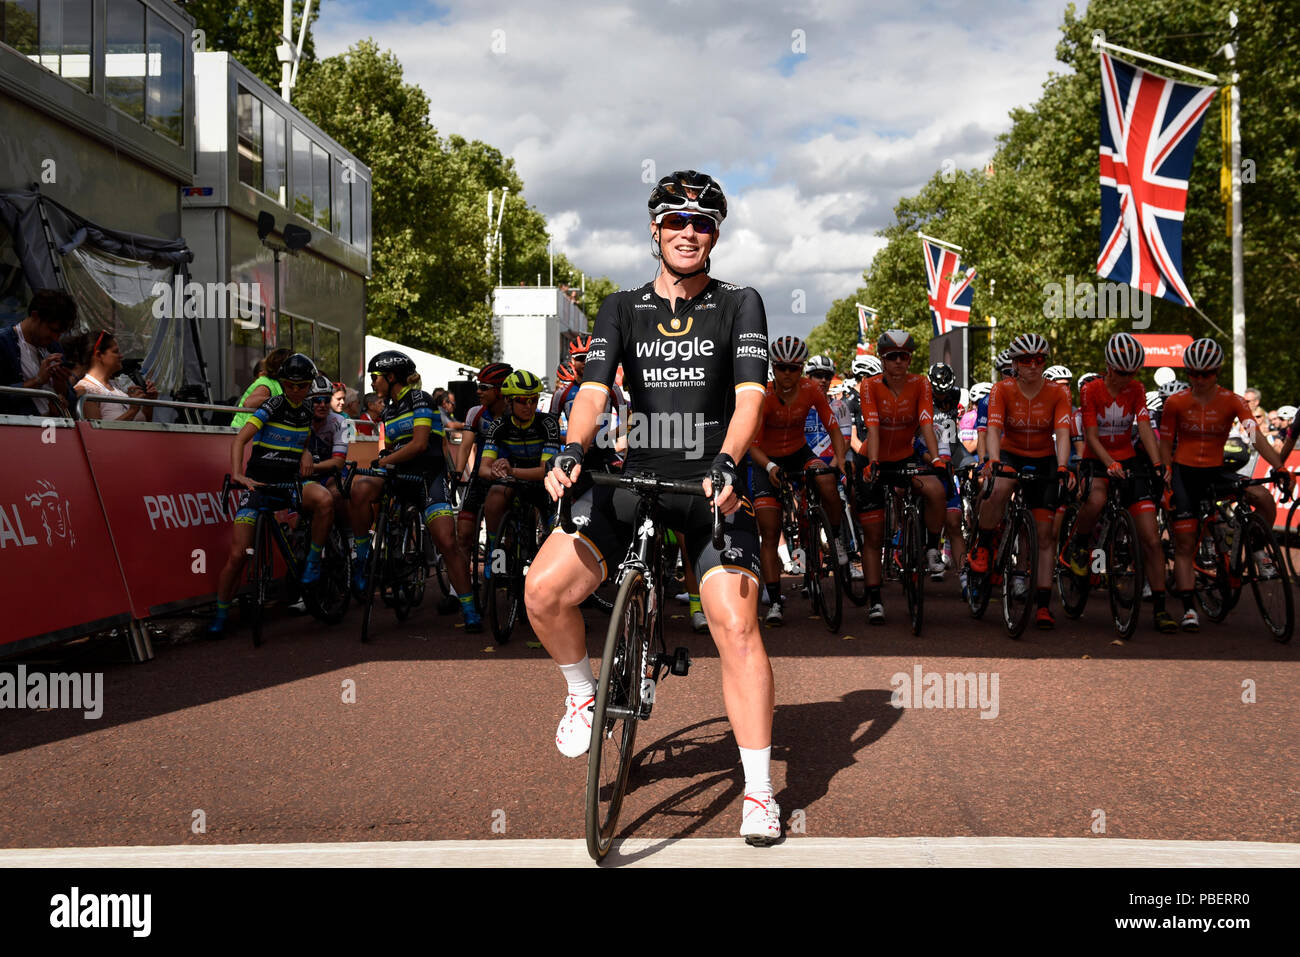 London, UK.  28 July 2018. Elite women riders take part in the Prudential RideLondon Classique riding 12 laps round a 5.4km circuit in central London, won by Kirsten Wild of Team Wiggle High5 (pictured).  Ranked as one of the top women's UCI WorldTour events, prize money for the race is the highest ever for a women's one day race and features 9 of the top 10 teams from the Women's World Tour. (Editorial use only)  Credit: Stephen Chung / Alamy Live News Stock Photo